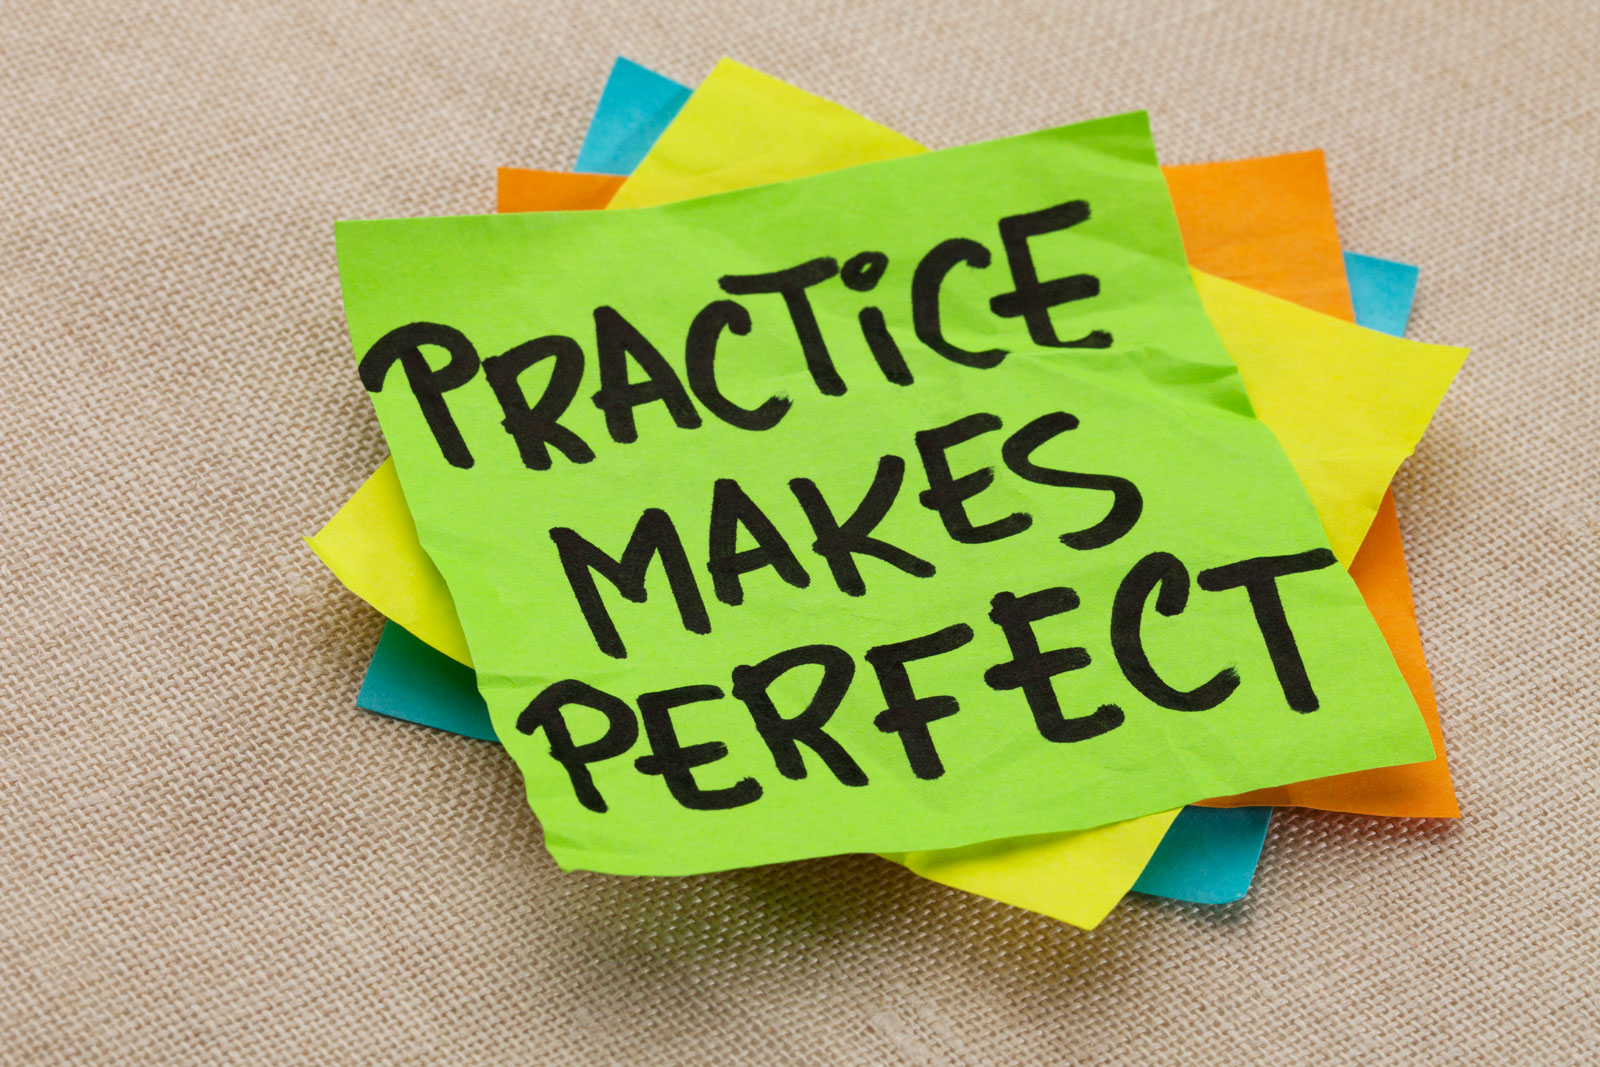 Practice Makes Perfect   How To Become The Social Media Expert In Your Organization